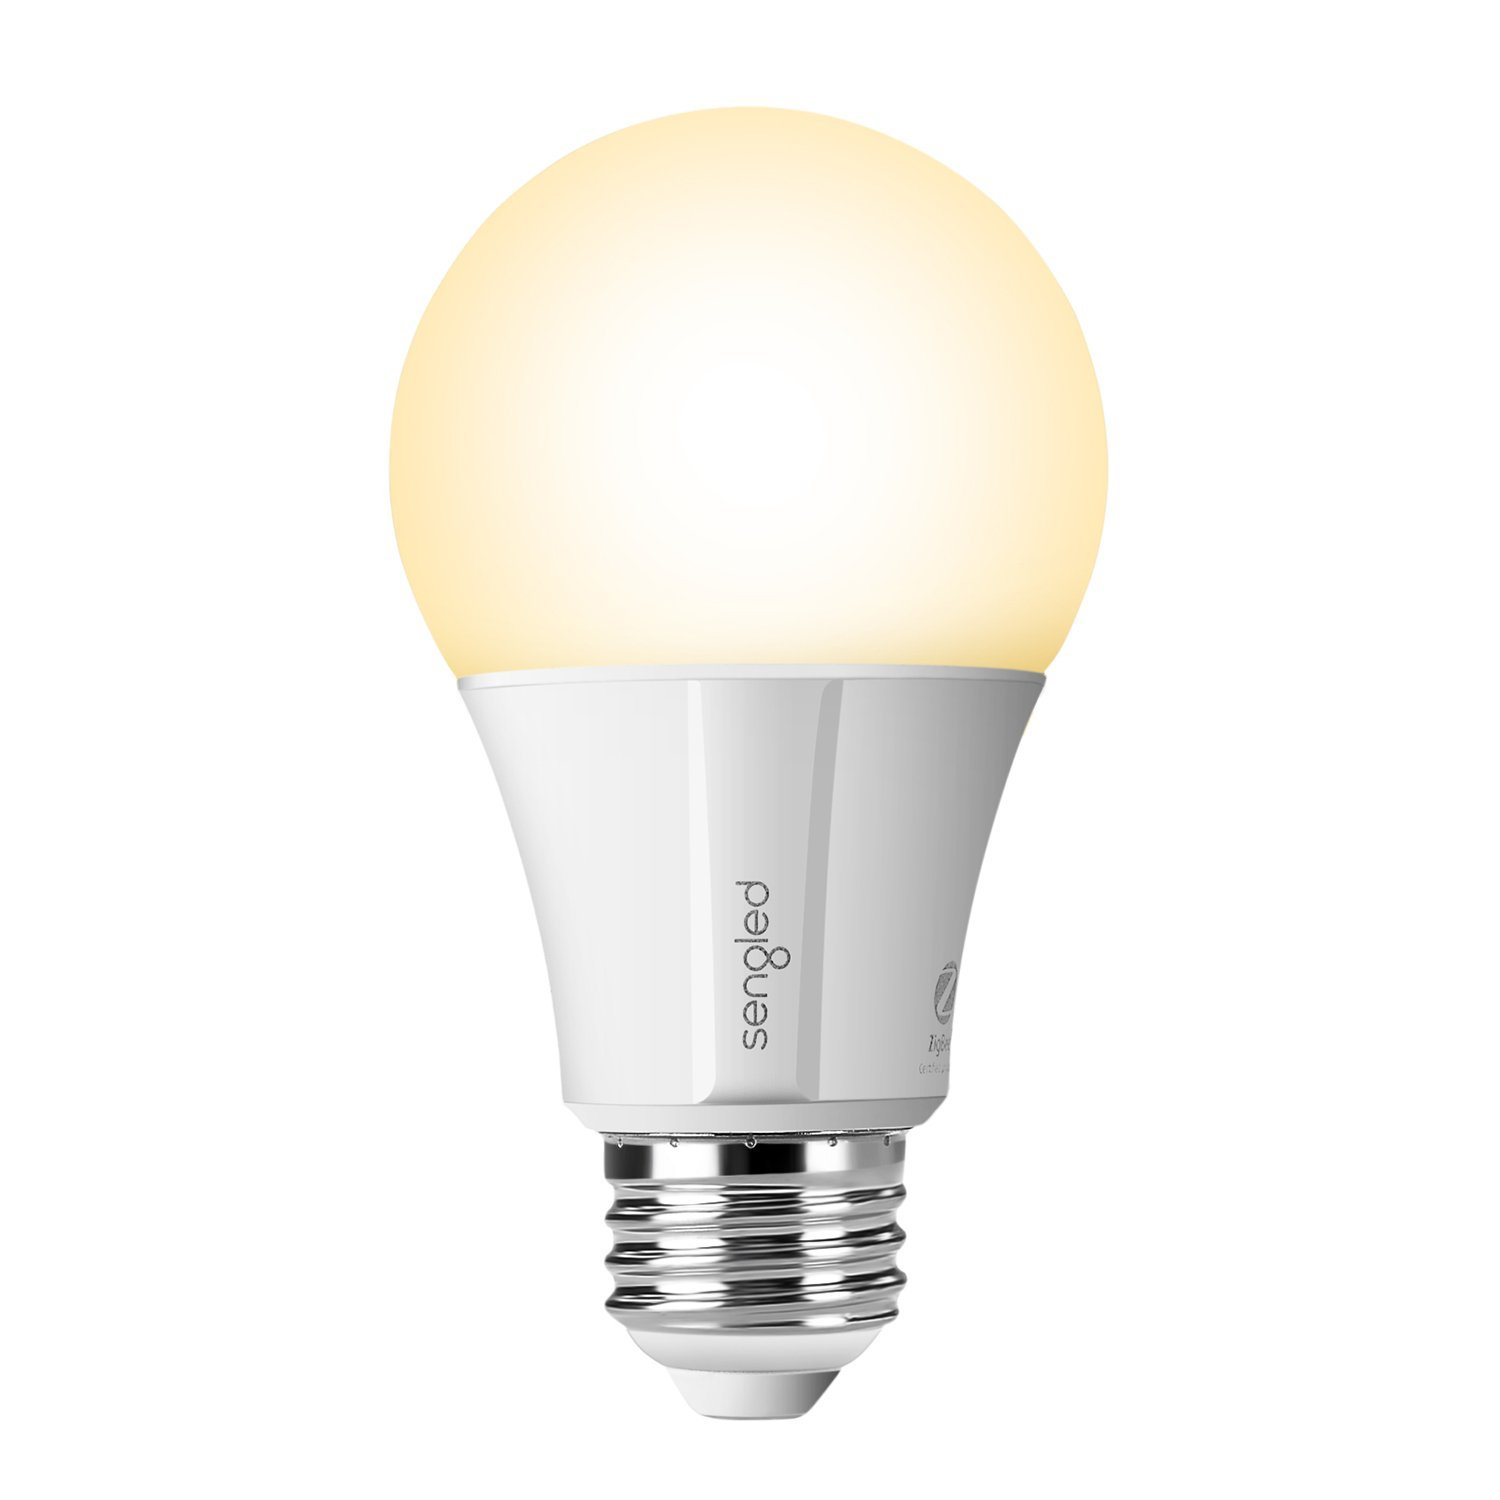 7 Best Smart Light Bulbs In 2018 Top Bluetooth And Led Light Bulbs